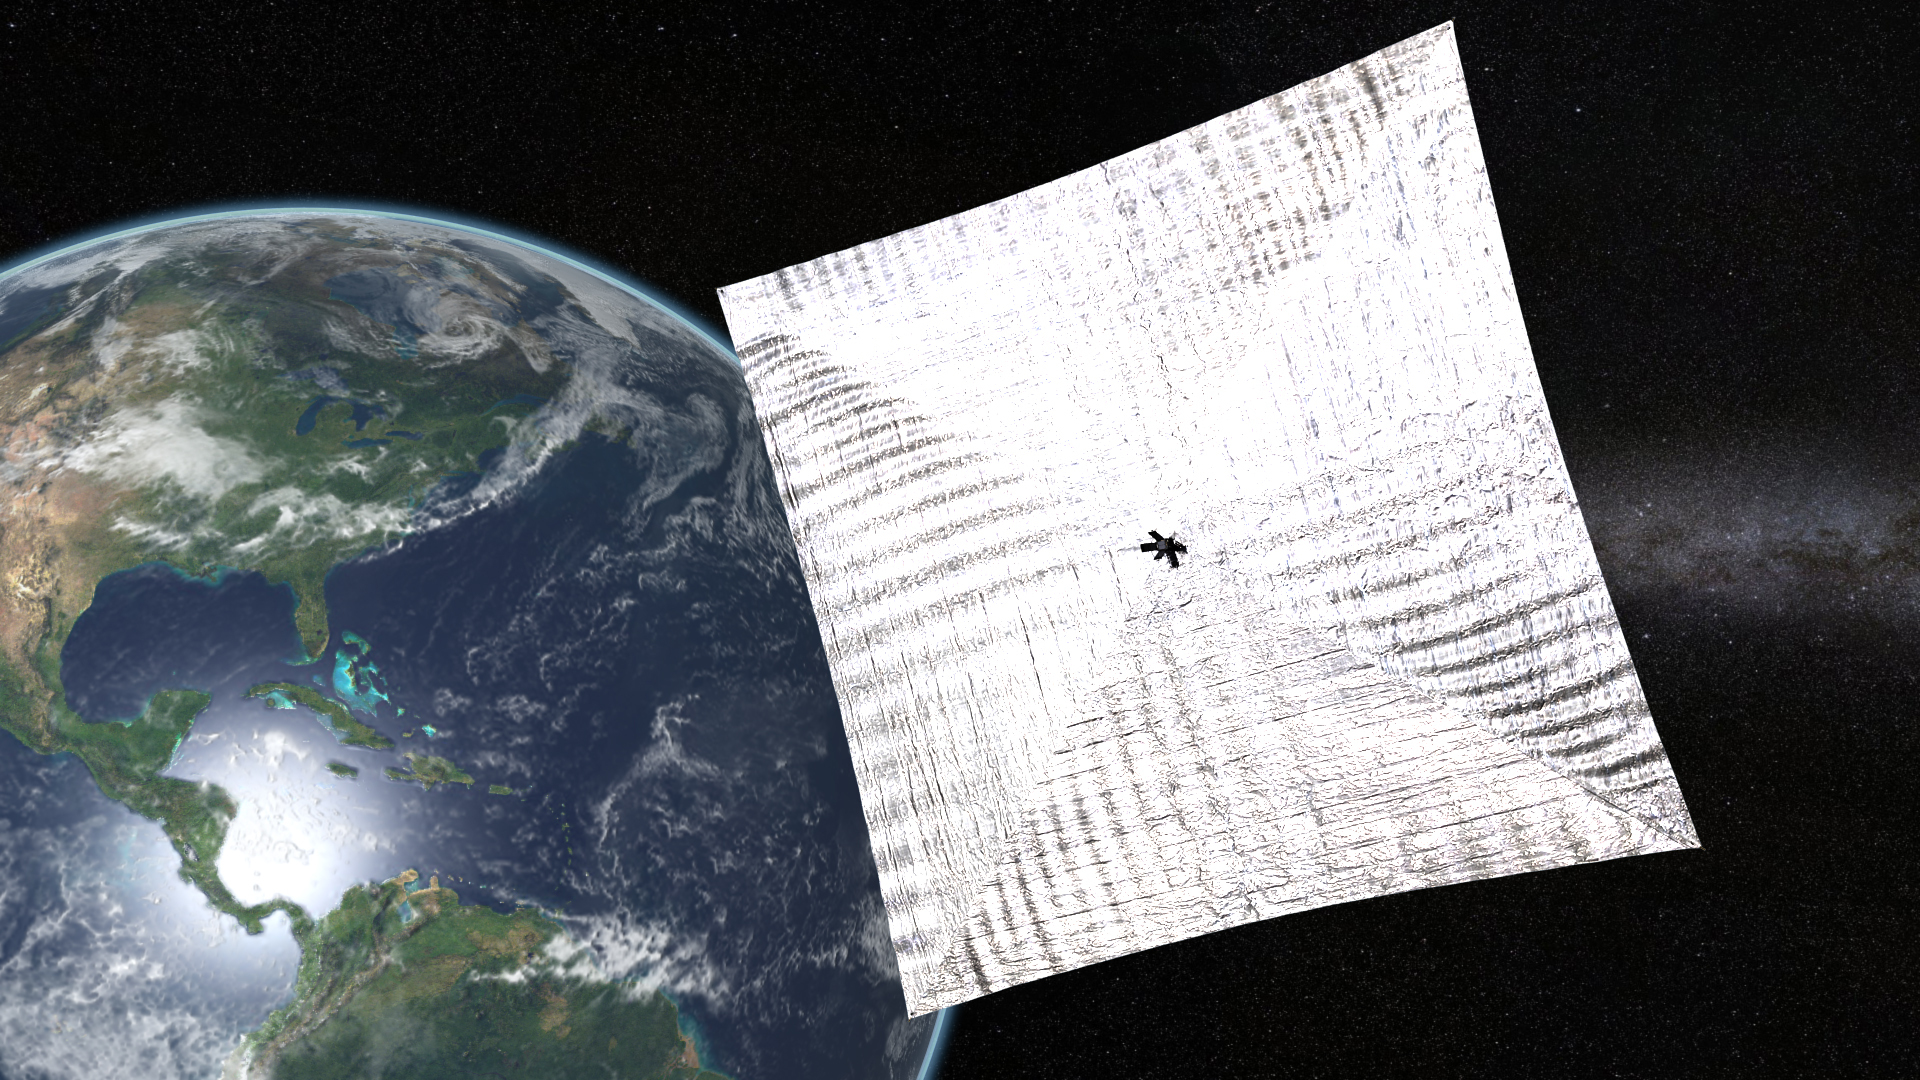 Lightsail 1 In Earth Orbit The Planetary Society